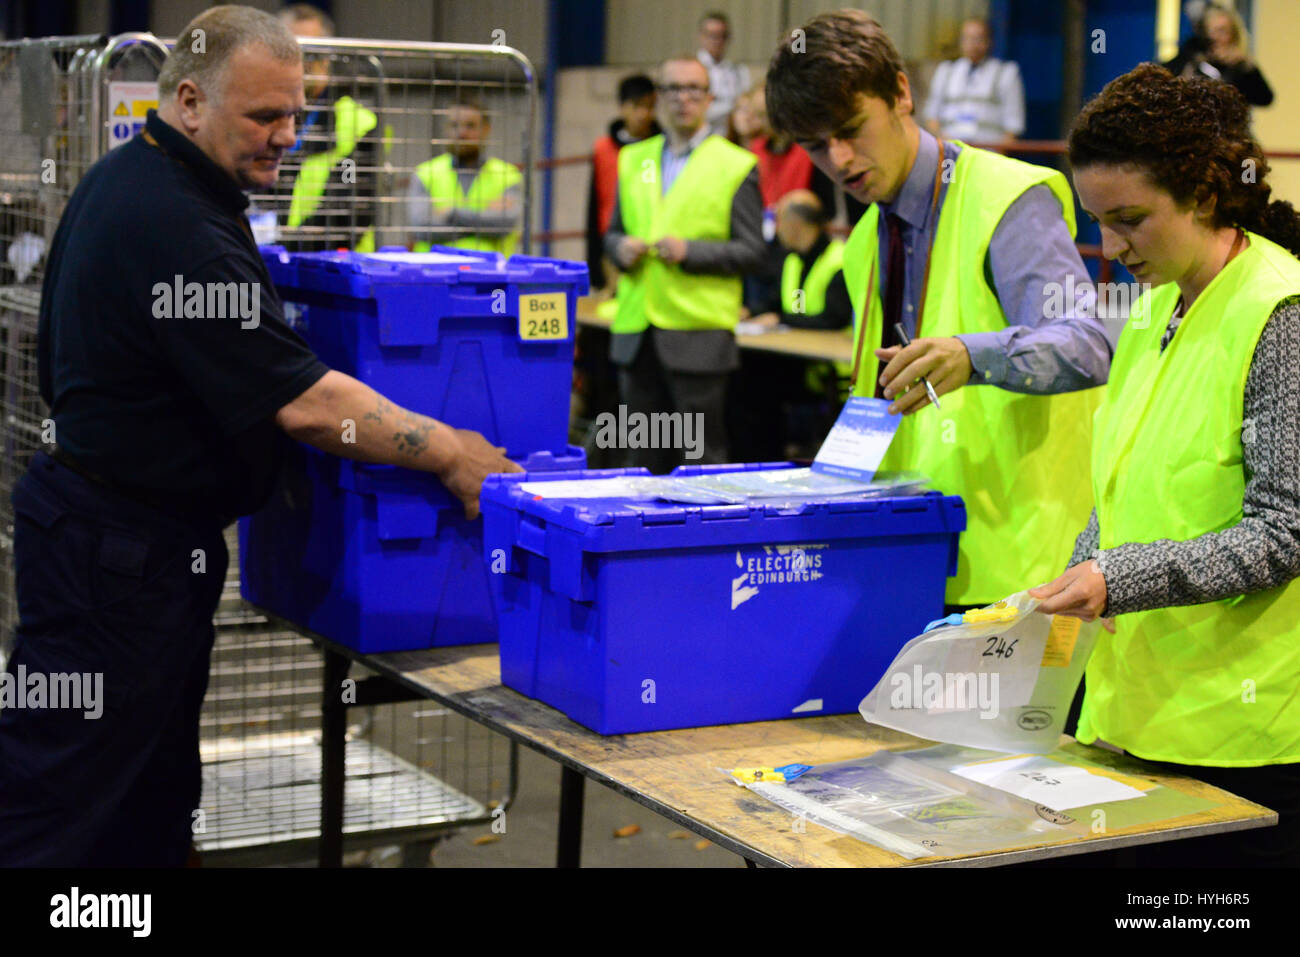 The first ballot boxes arrive at the Edinburgh count for the Scottish independence referendum - Stock Image